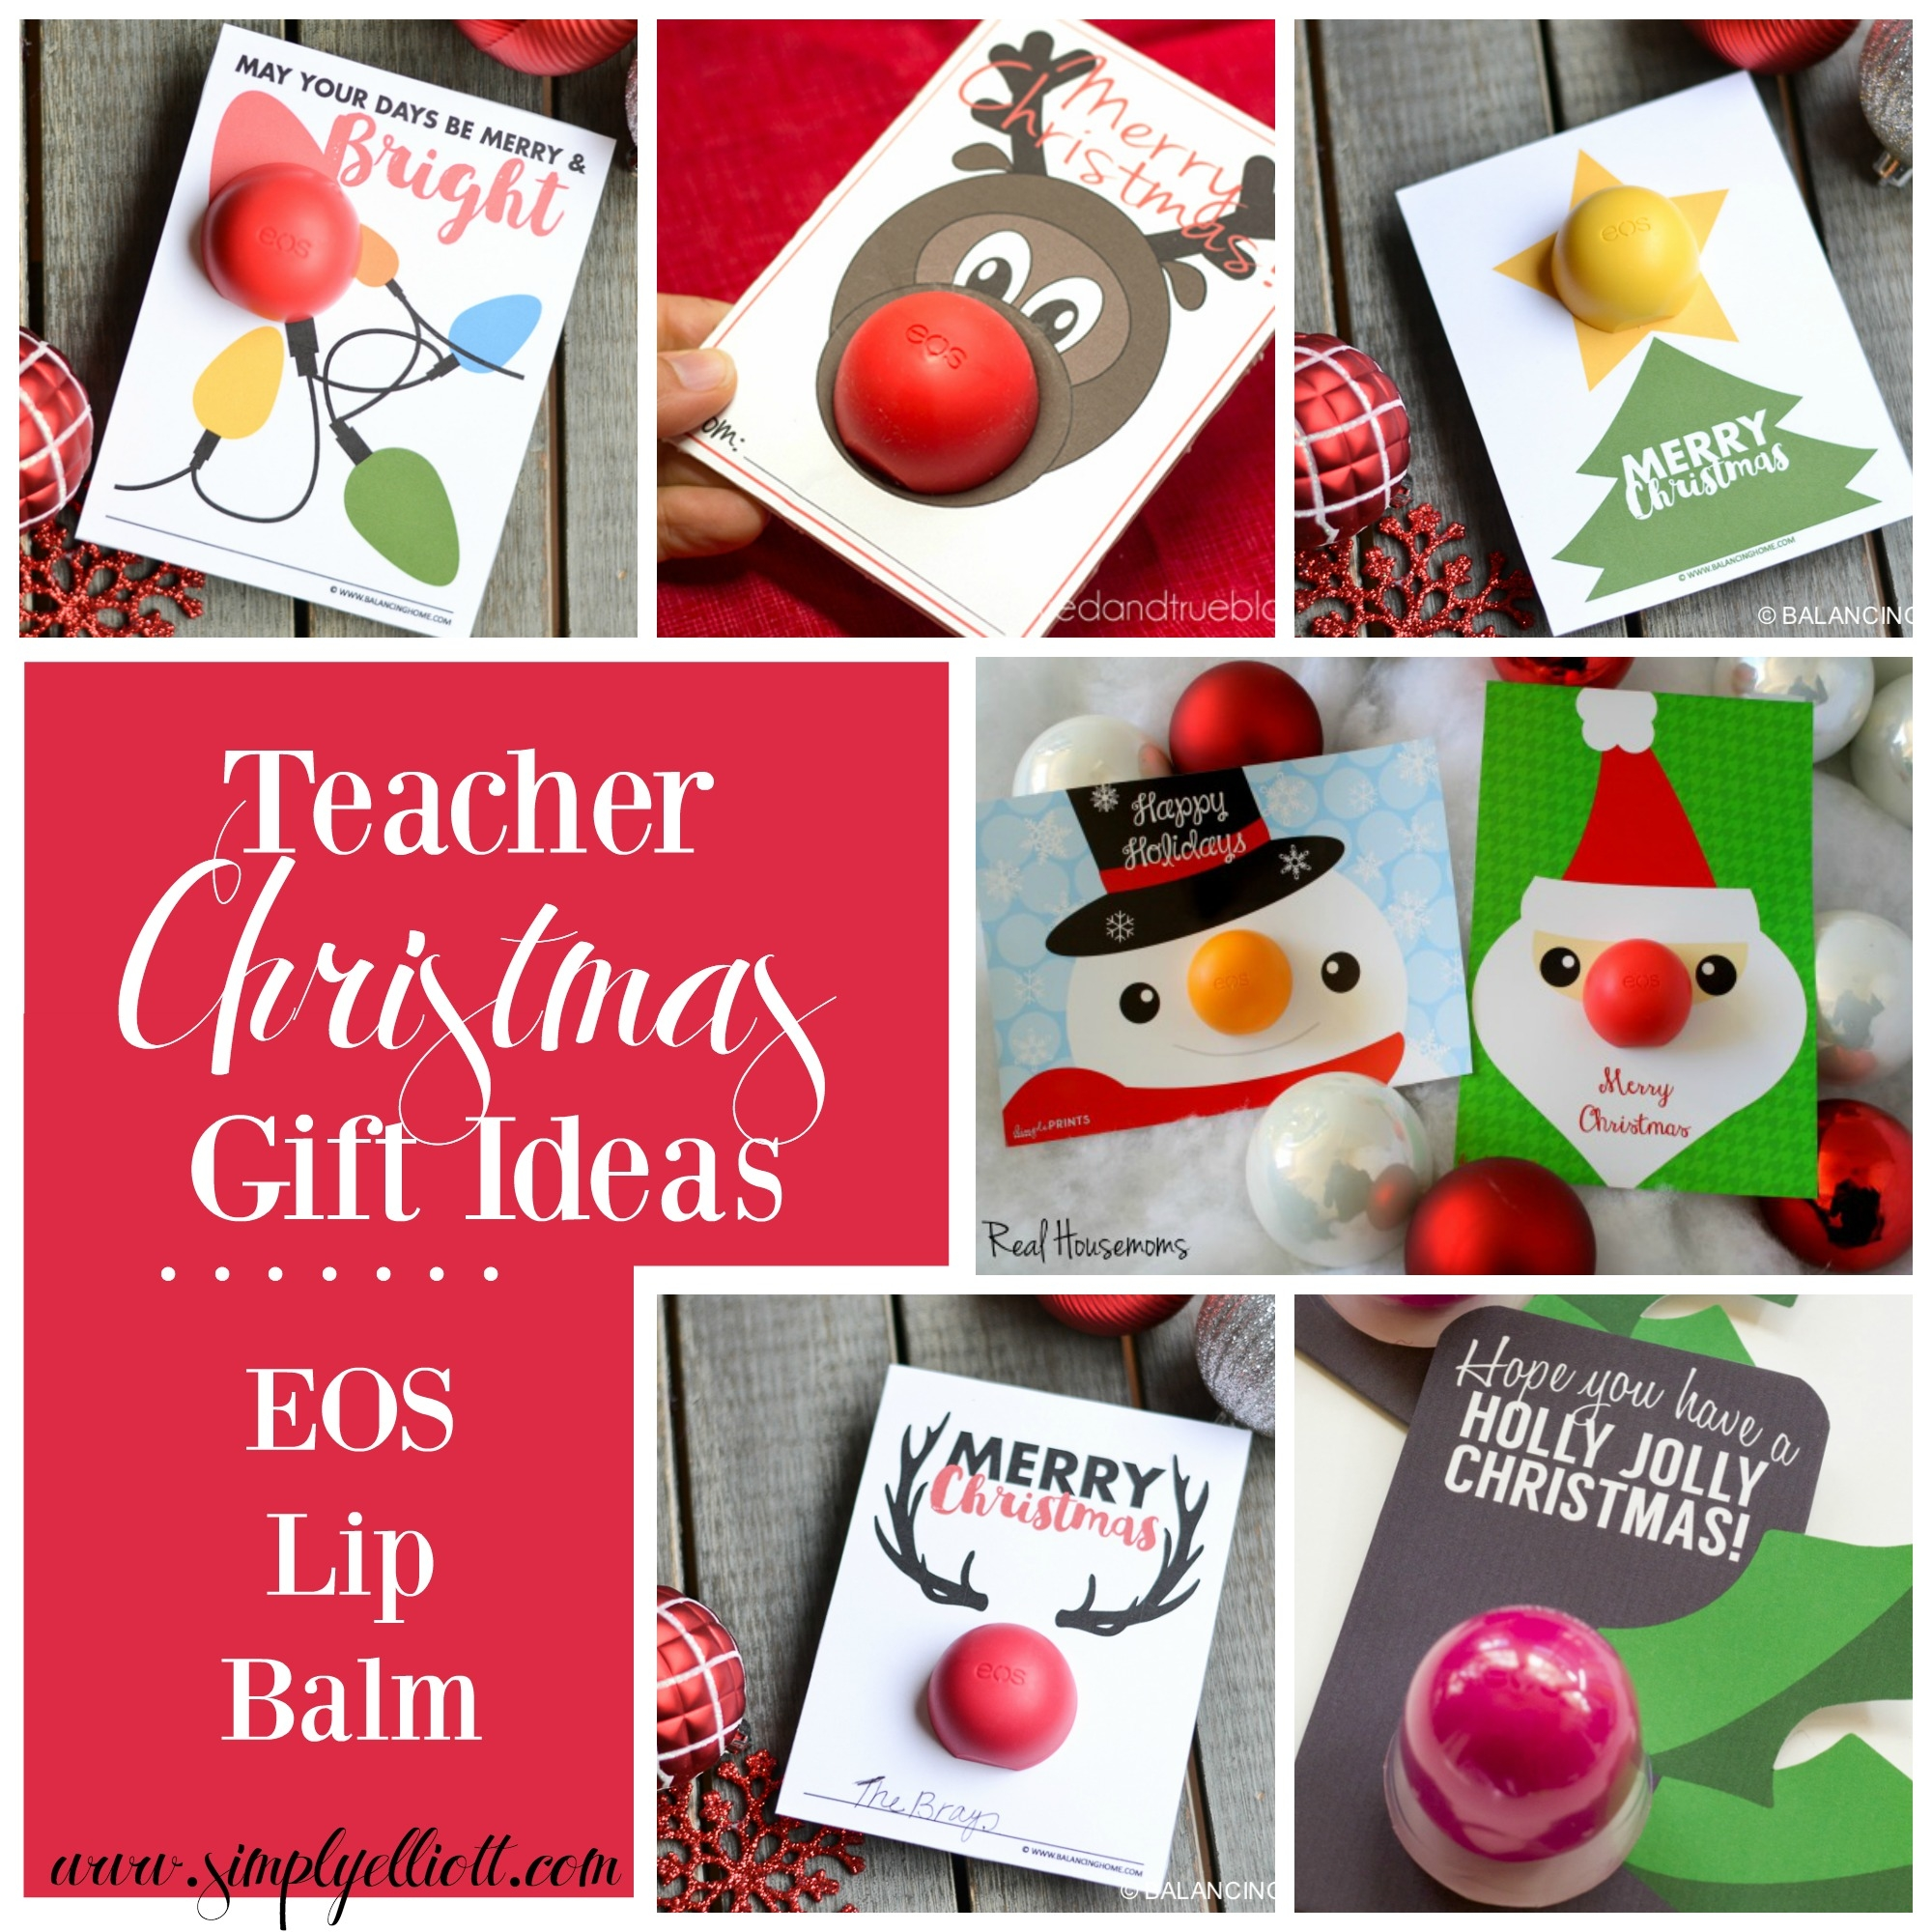 EOS | Teacher Christmas Gift Ideas - Simply Elliott